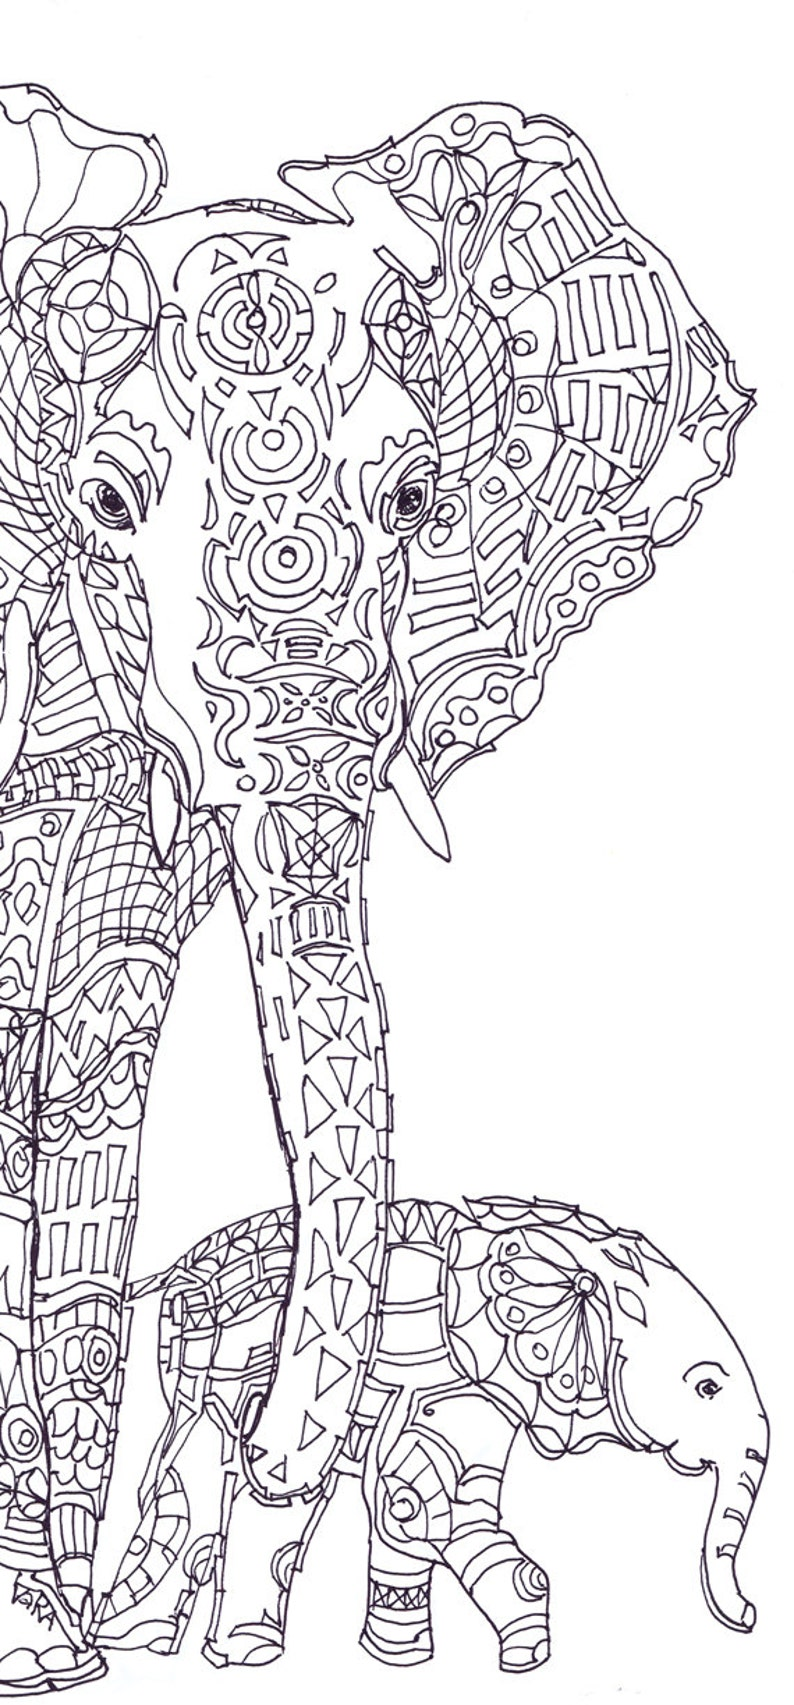 Elephant Clip Art Coloring pages Printable Adult Coloring book | Etsy